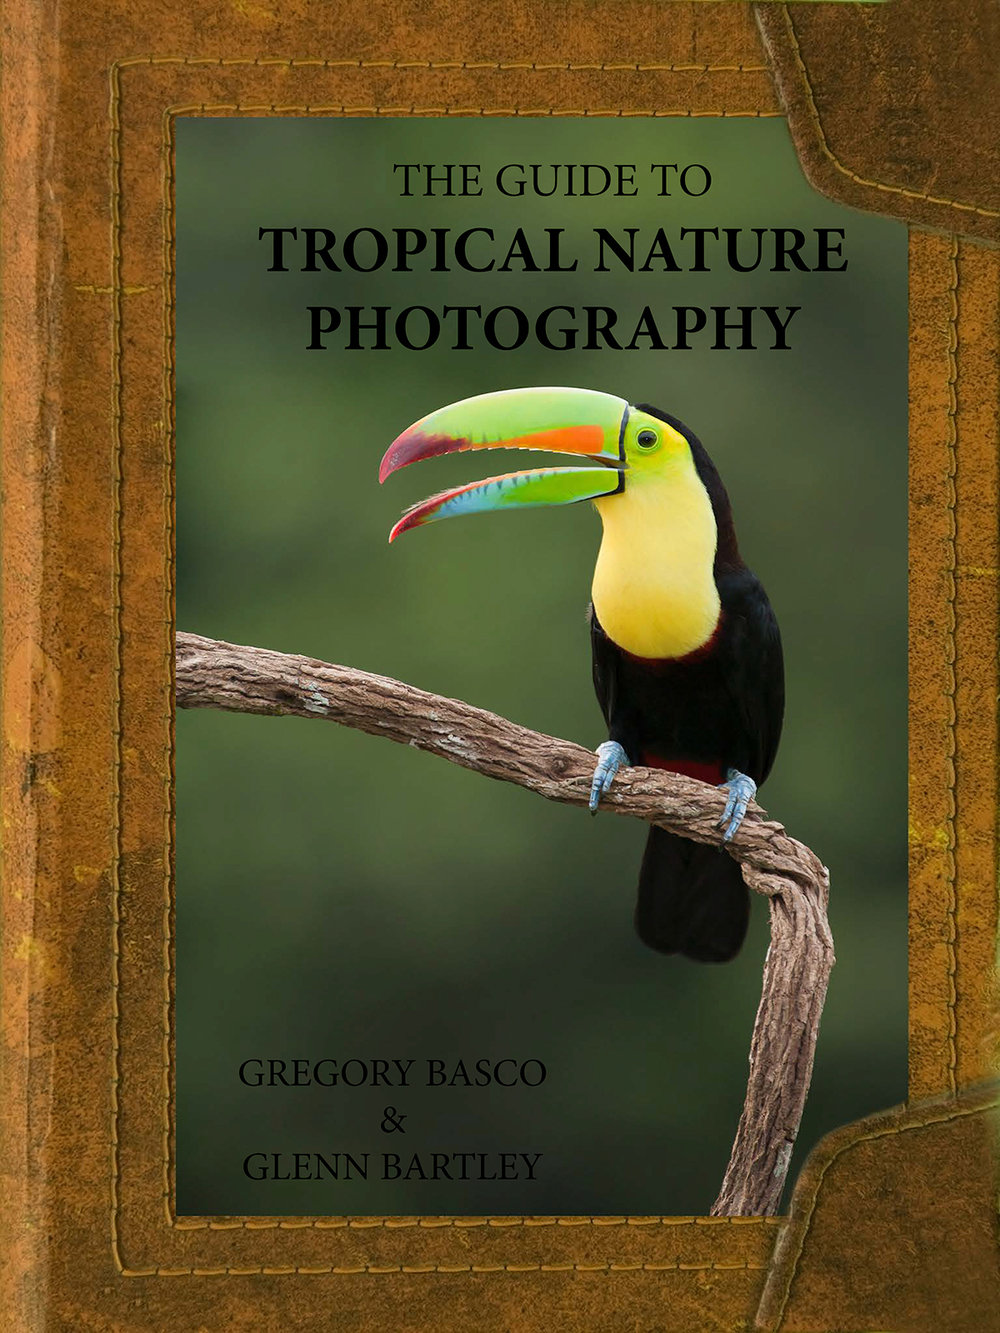 THE-GUIDE-TO-TROPICAL-NATURE-PHOTOGRAPHY-cover.jpg